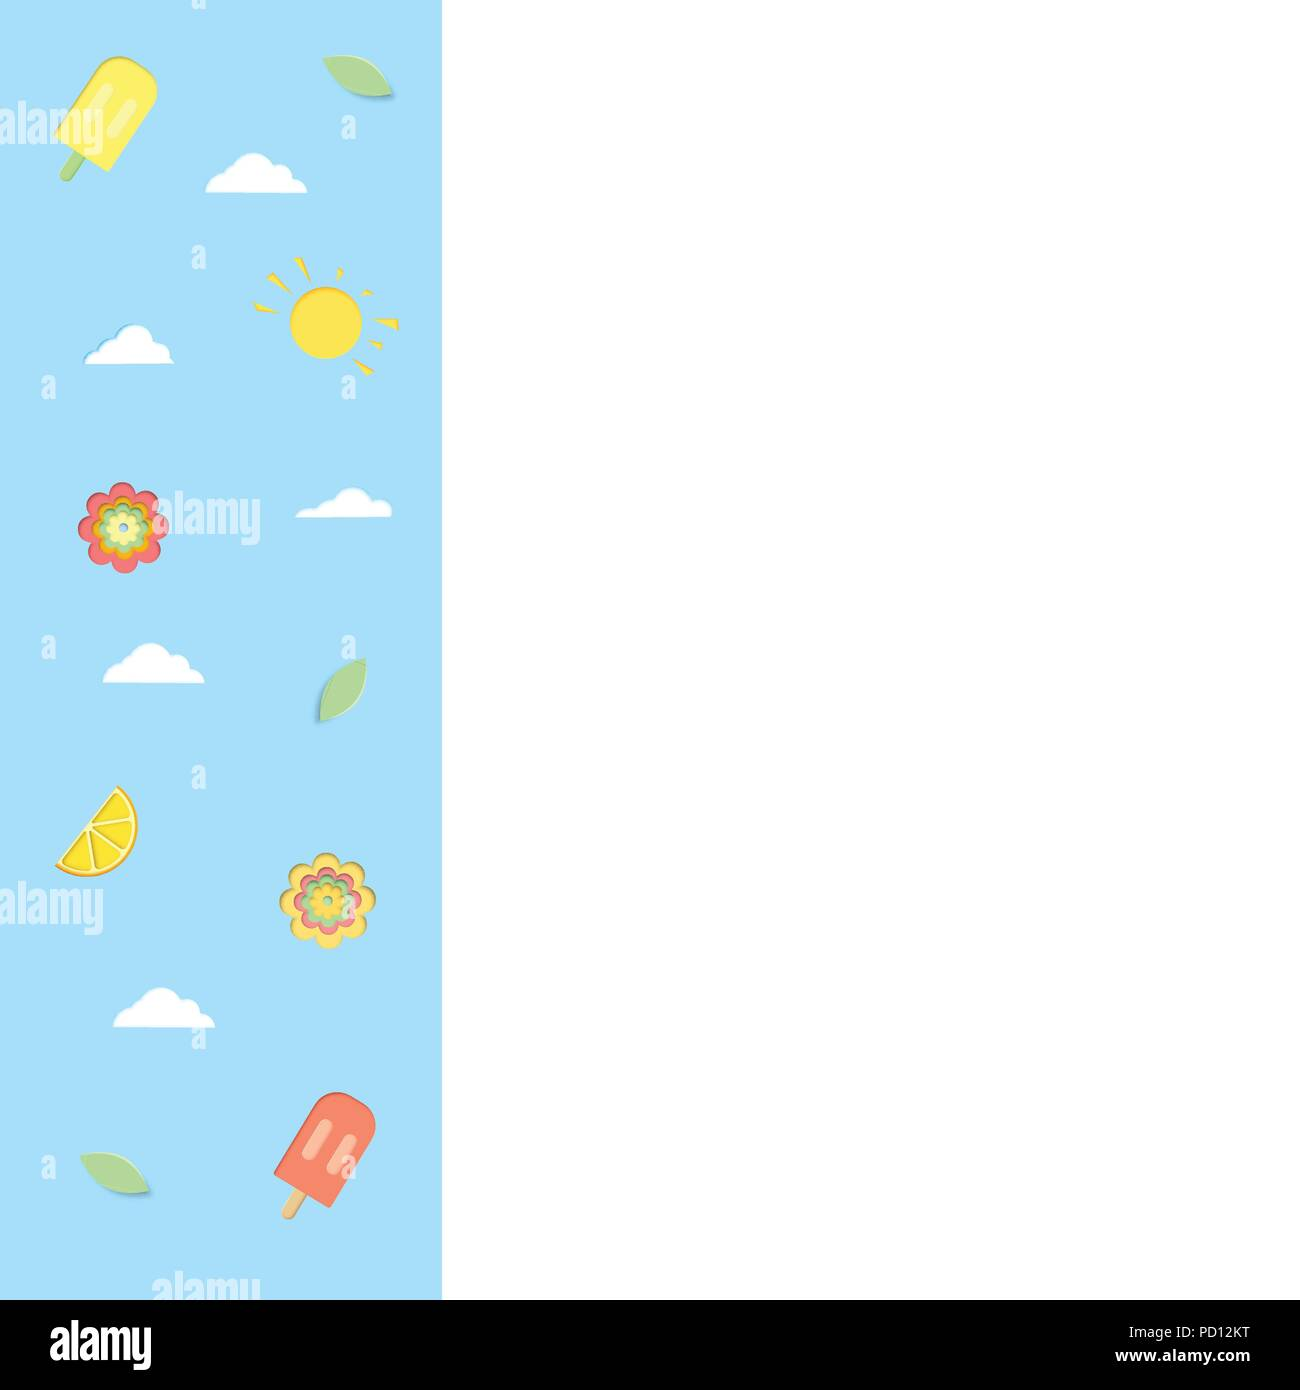 Template With Paper Cut Ice Cream Clouds Flowers Papercut Summer